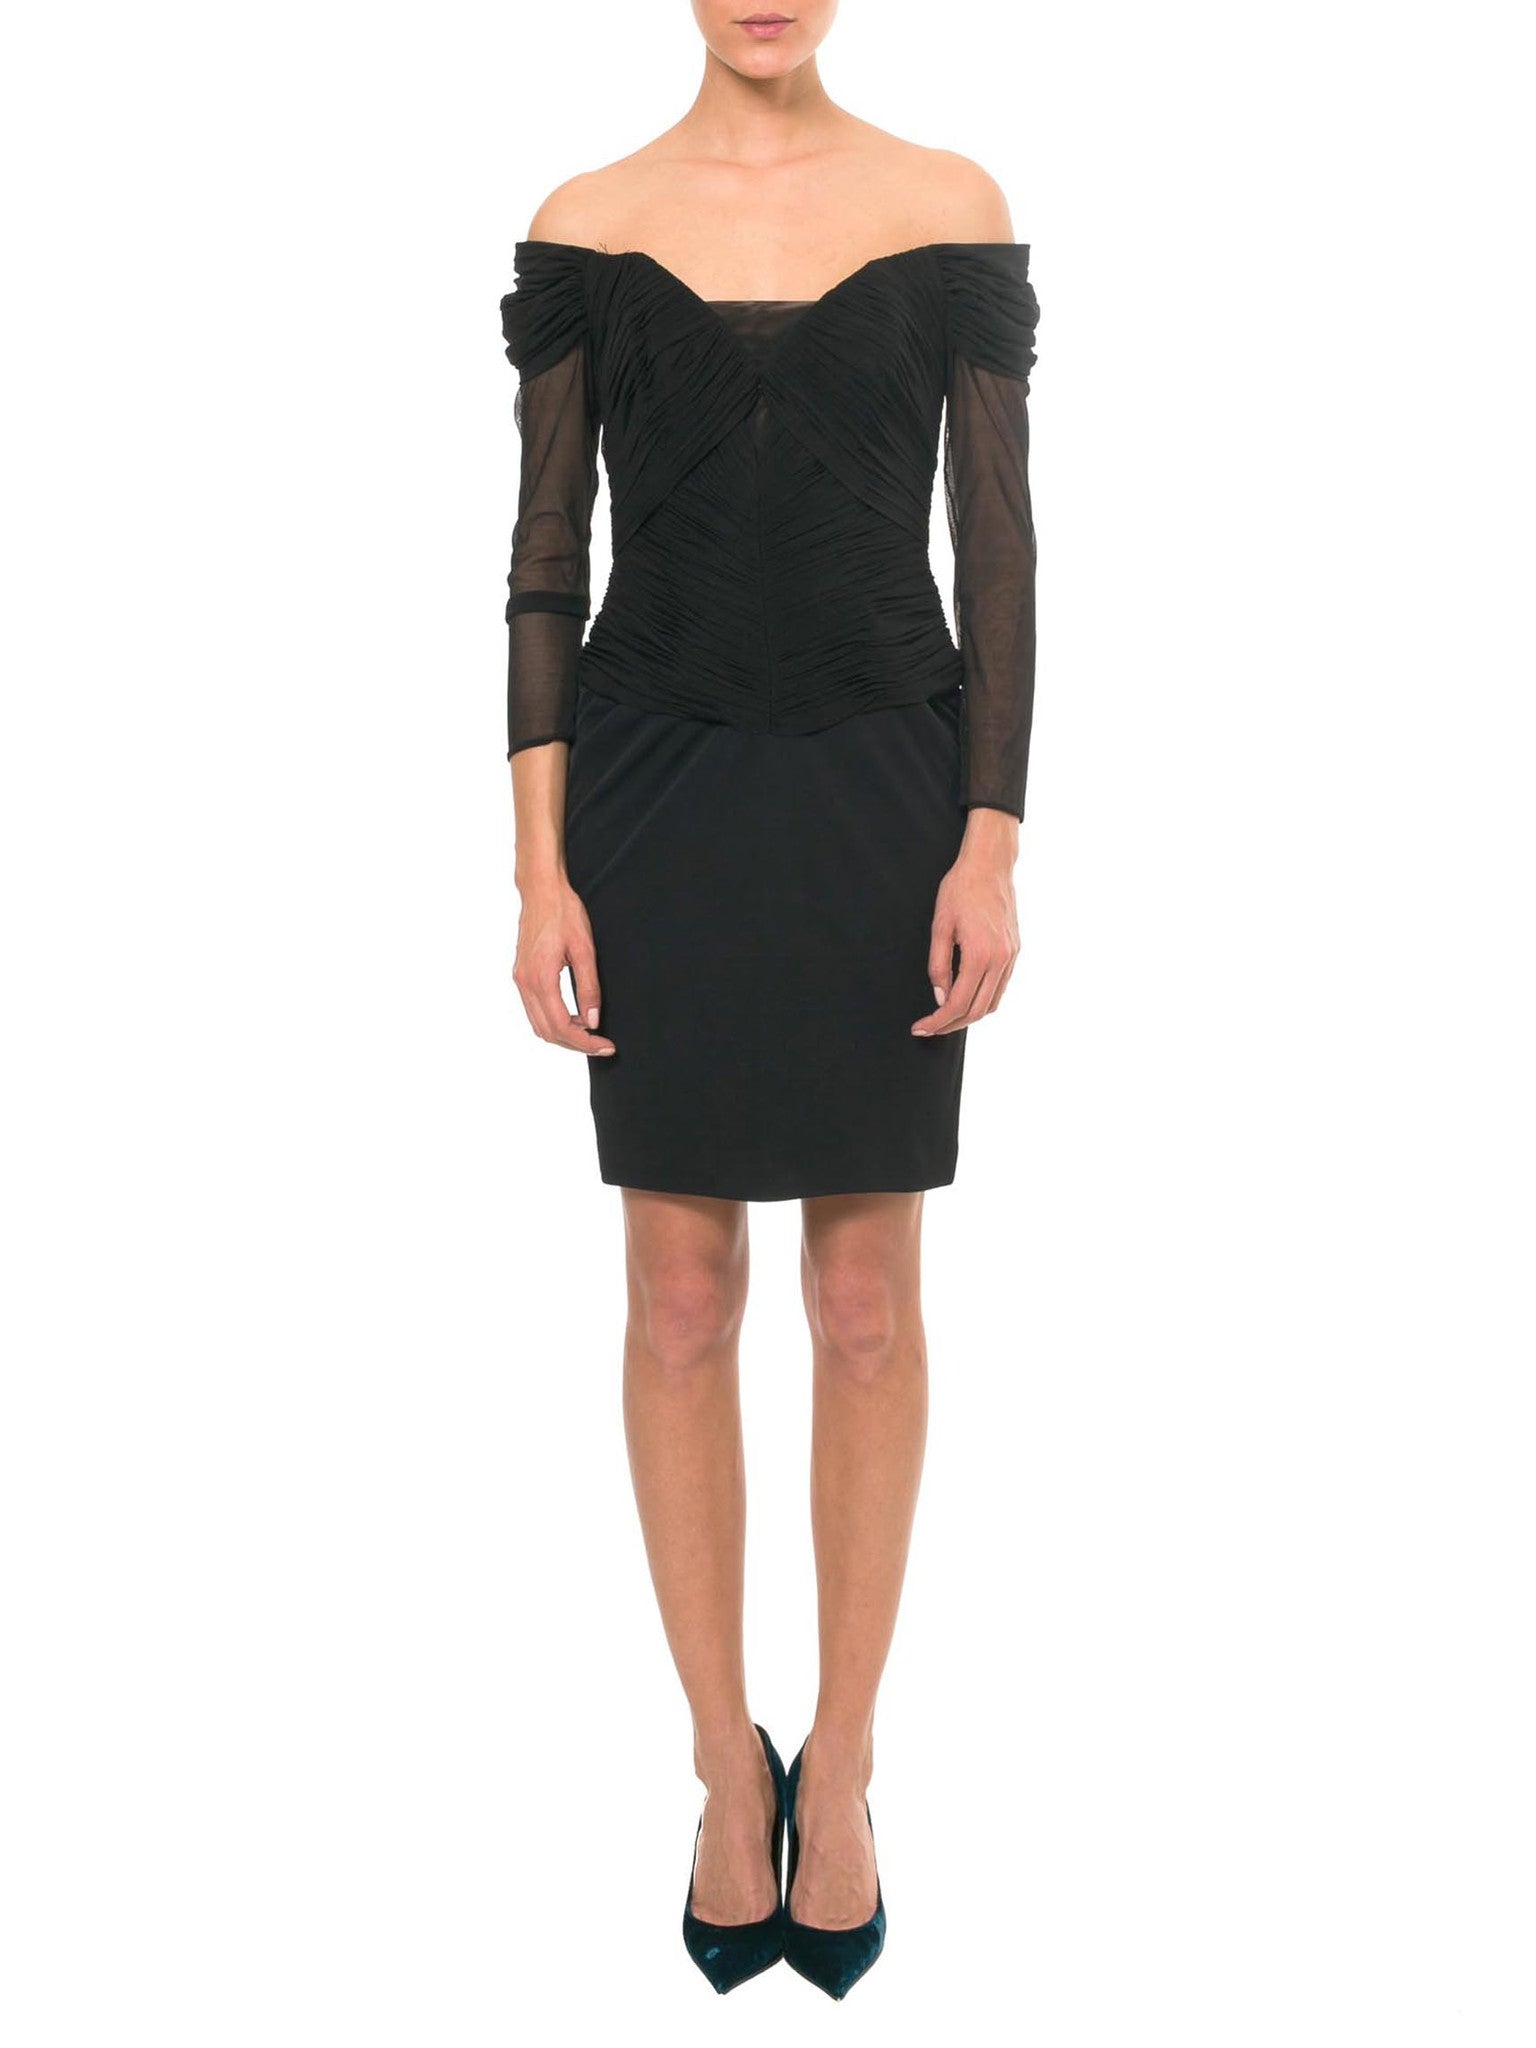 Vicky Tiel Hand Ruched Cocktail Dress